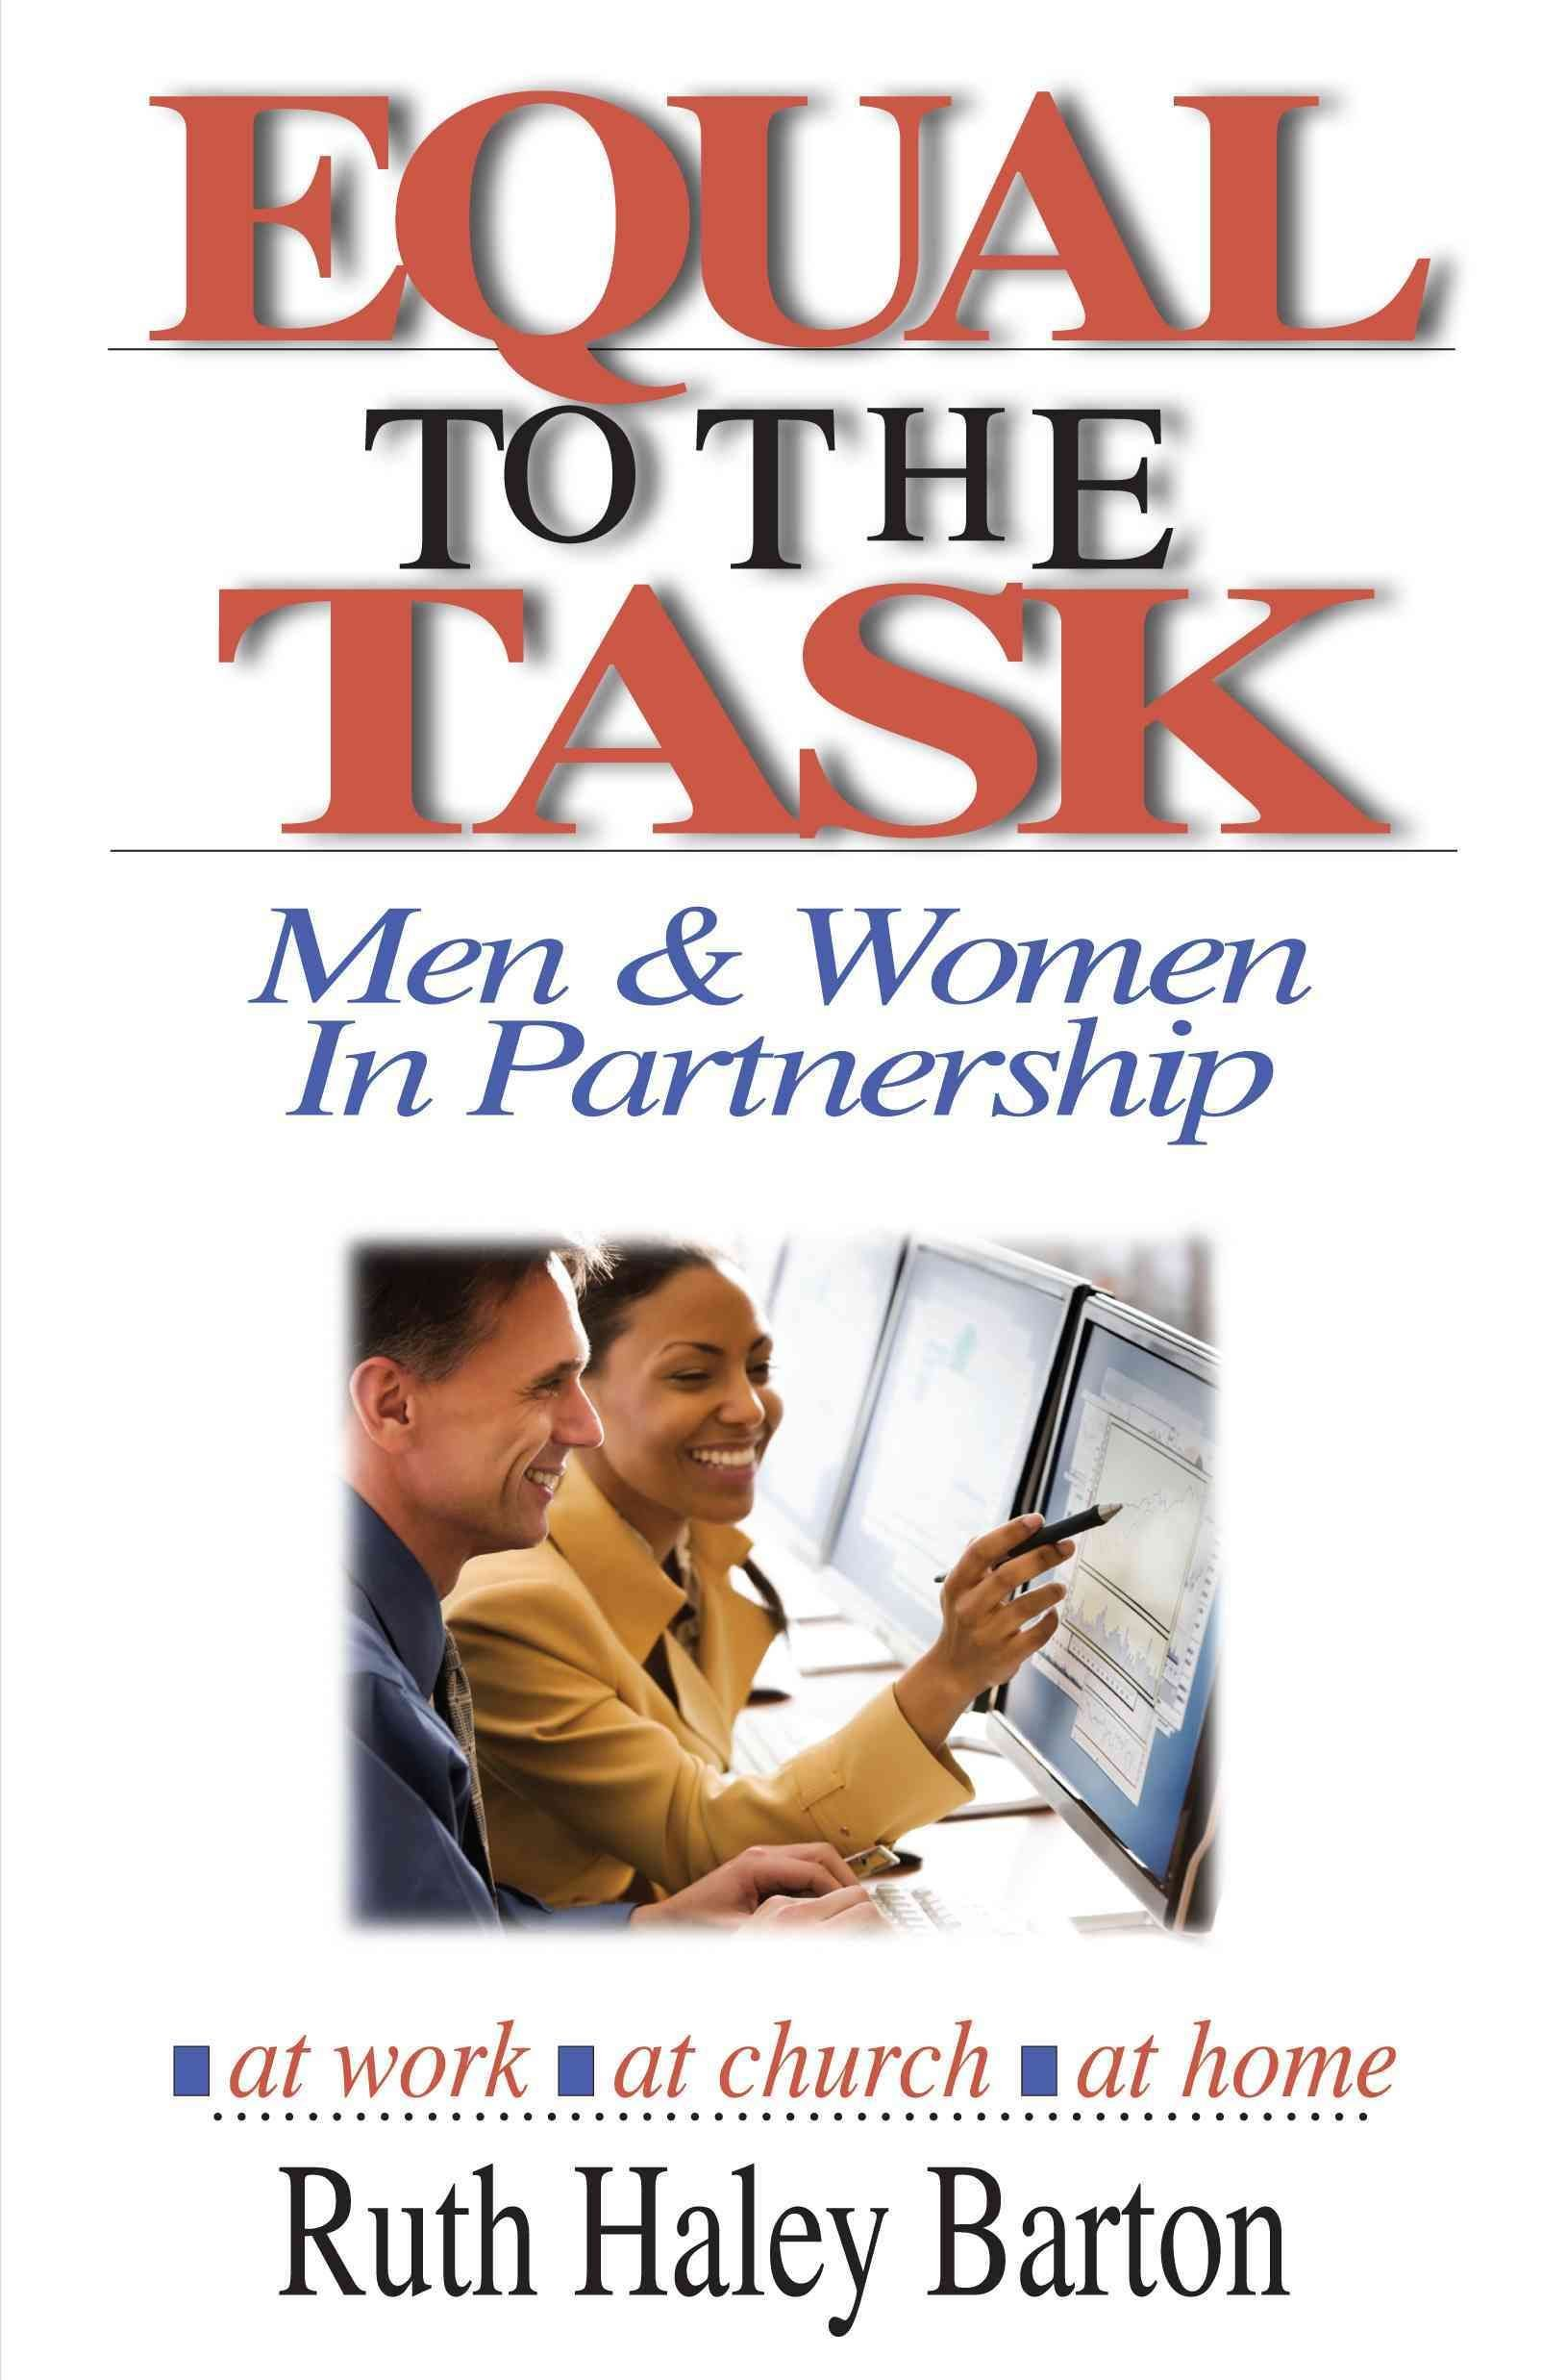 Equal to the Task - Ruth Haley Barton